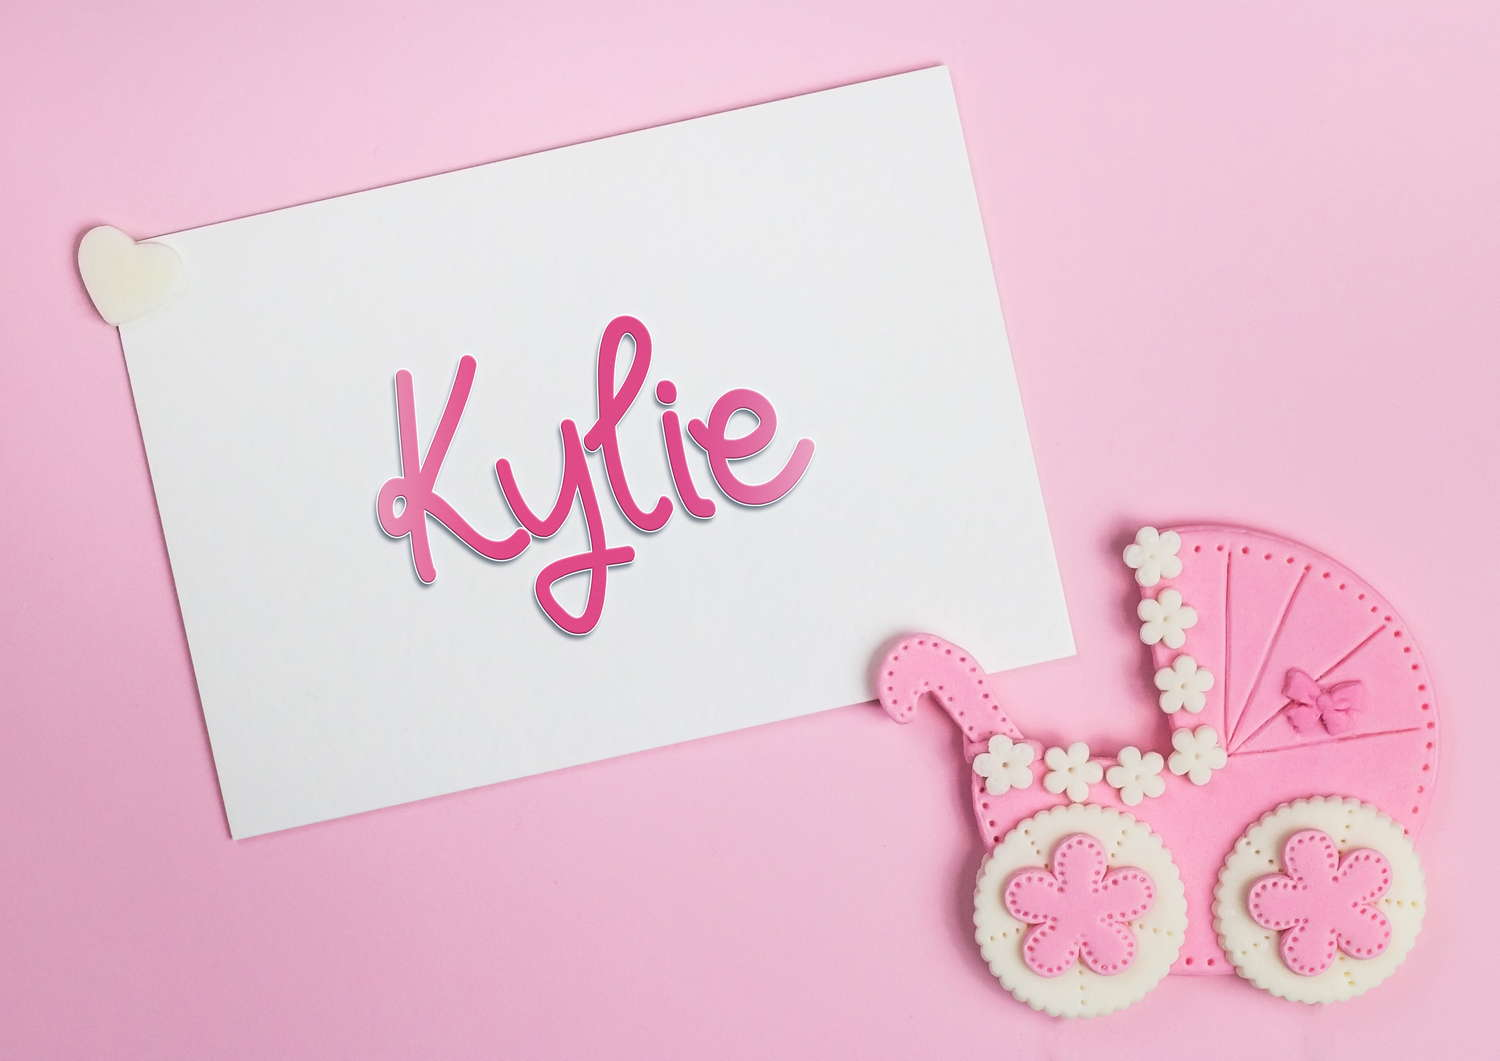 Kylie Baby Name